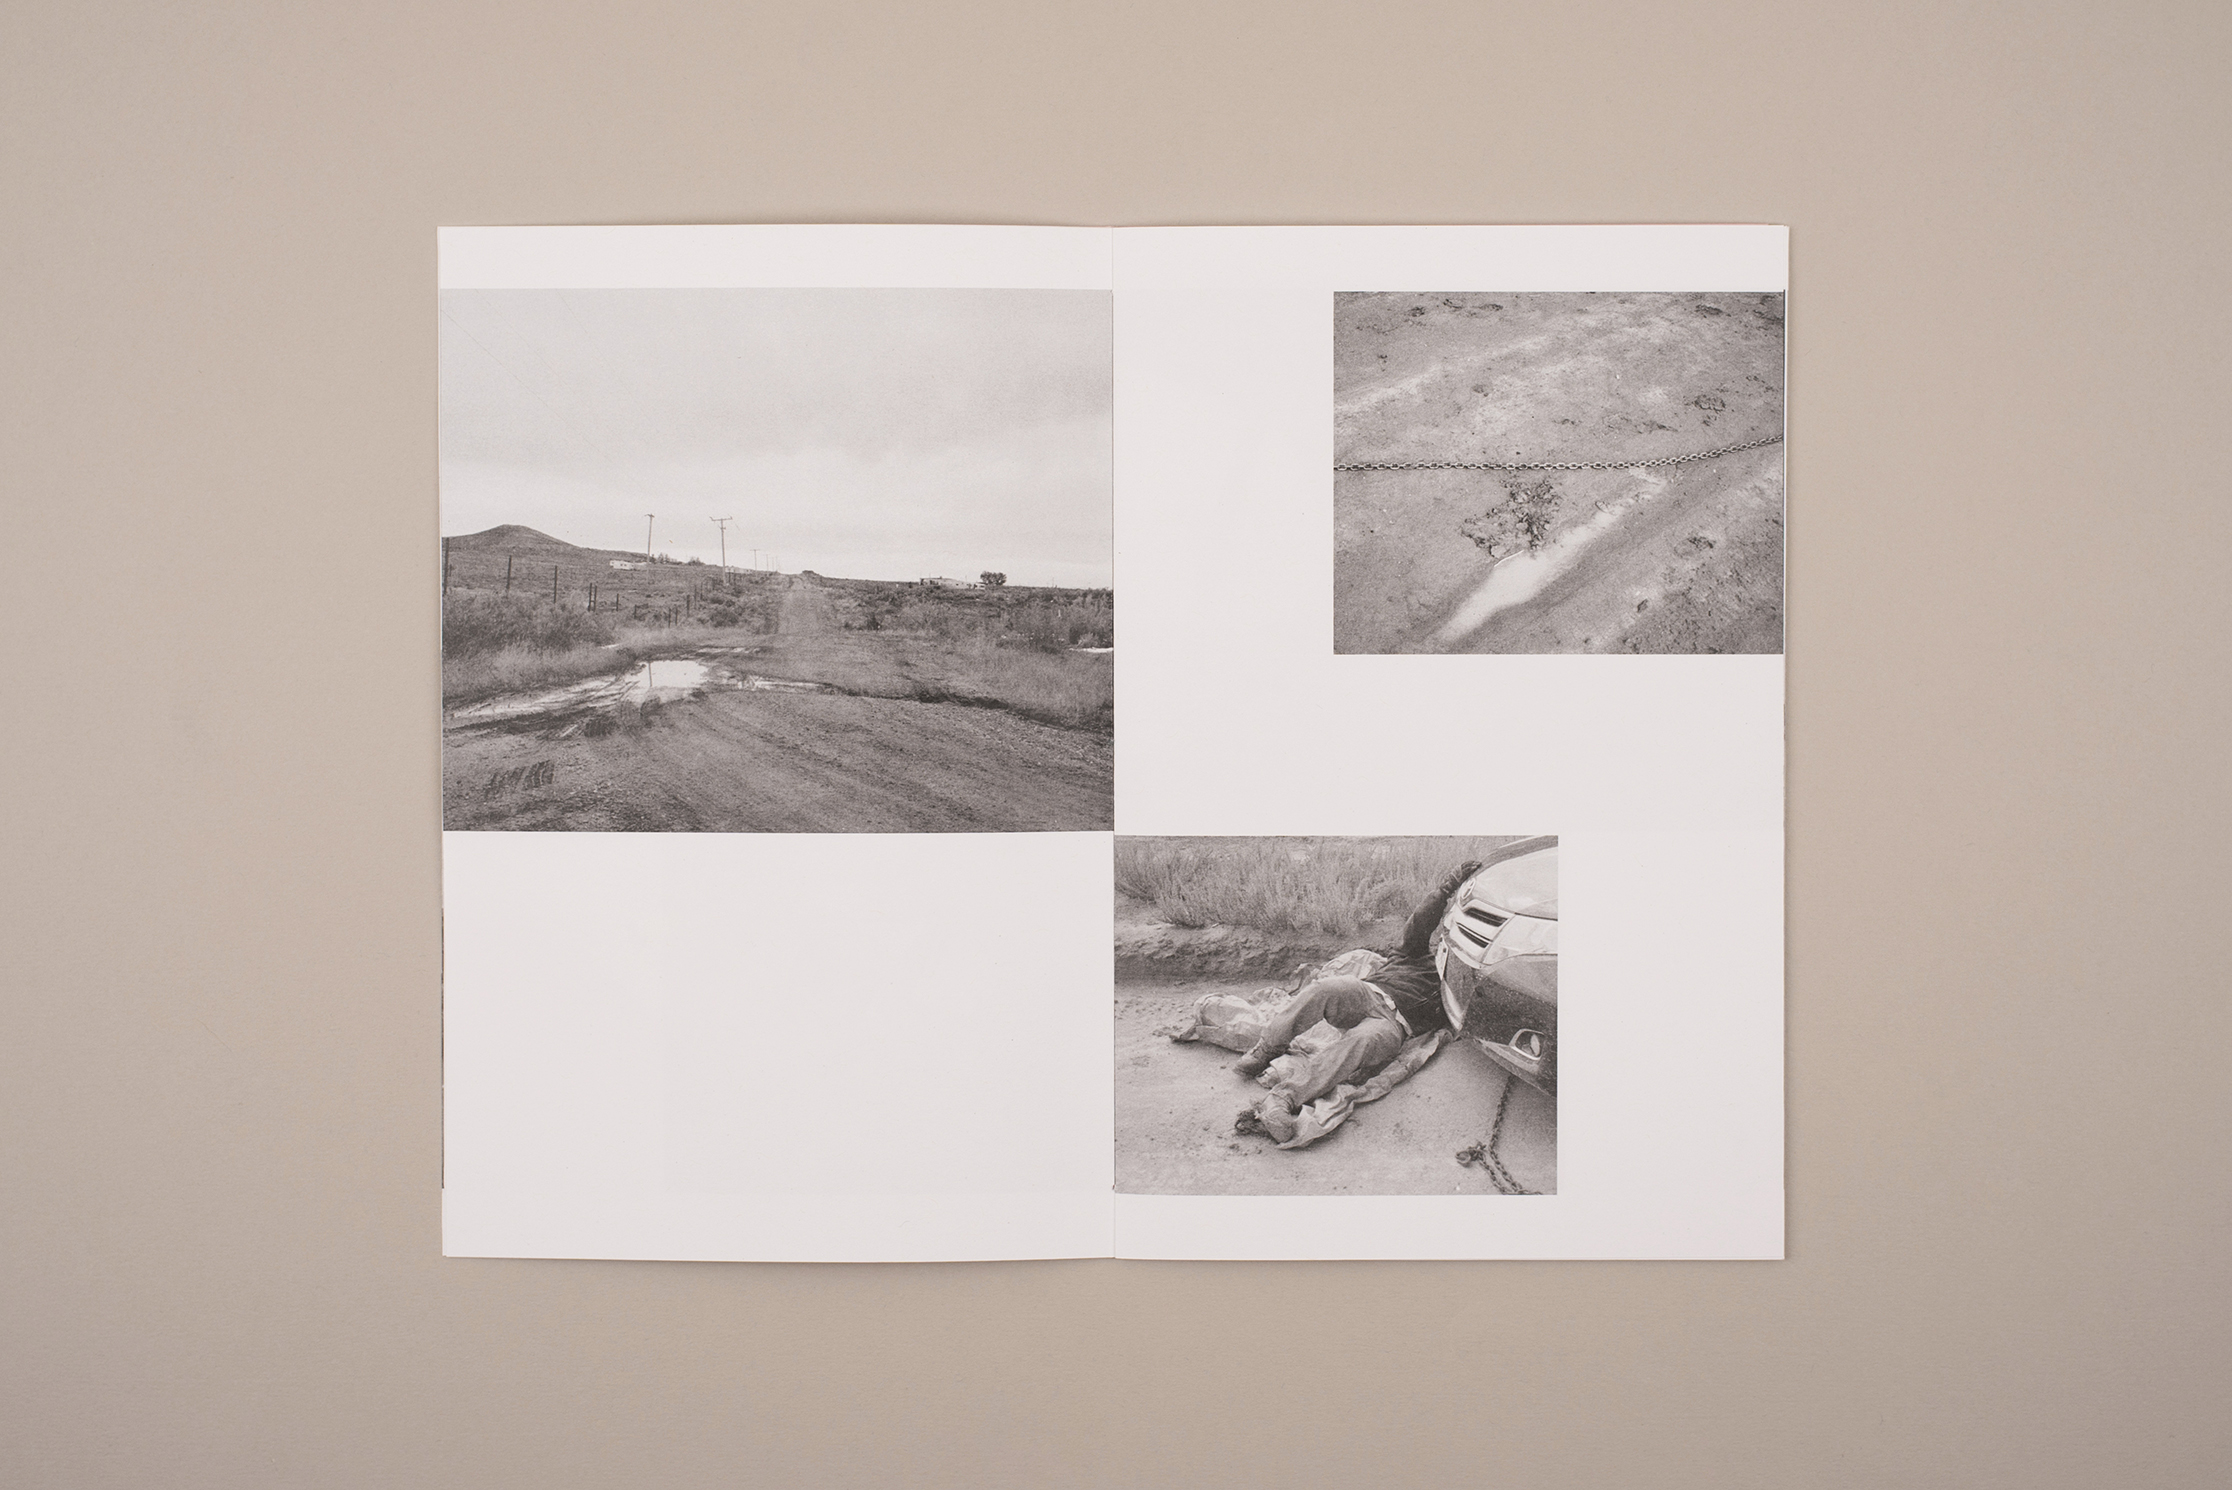 Space Cowboy zine, photography by Jack Latham. Poem by Sofia Kathryn Smith. A zine about hitchhiking in America. Black and white Photographs.